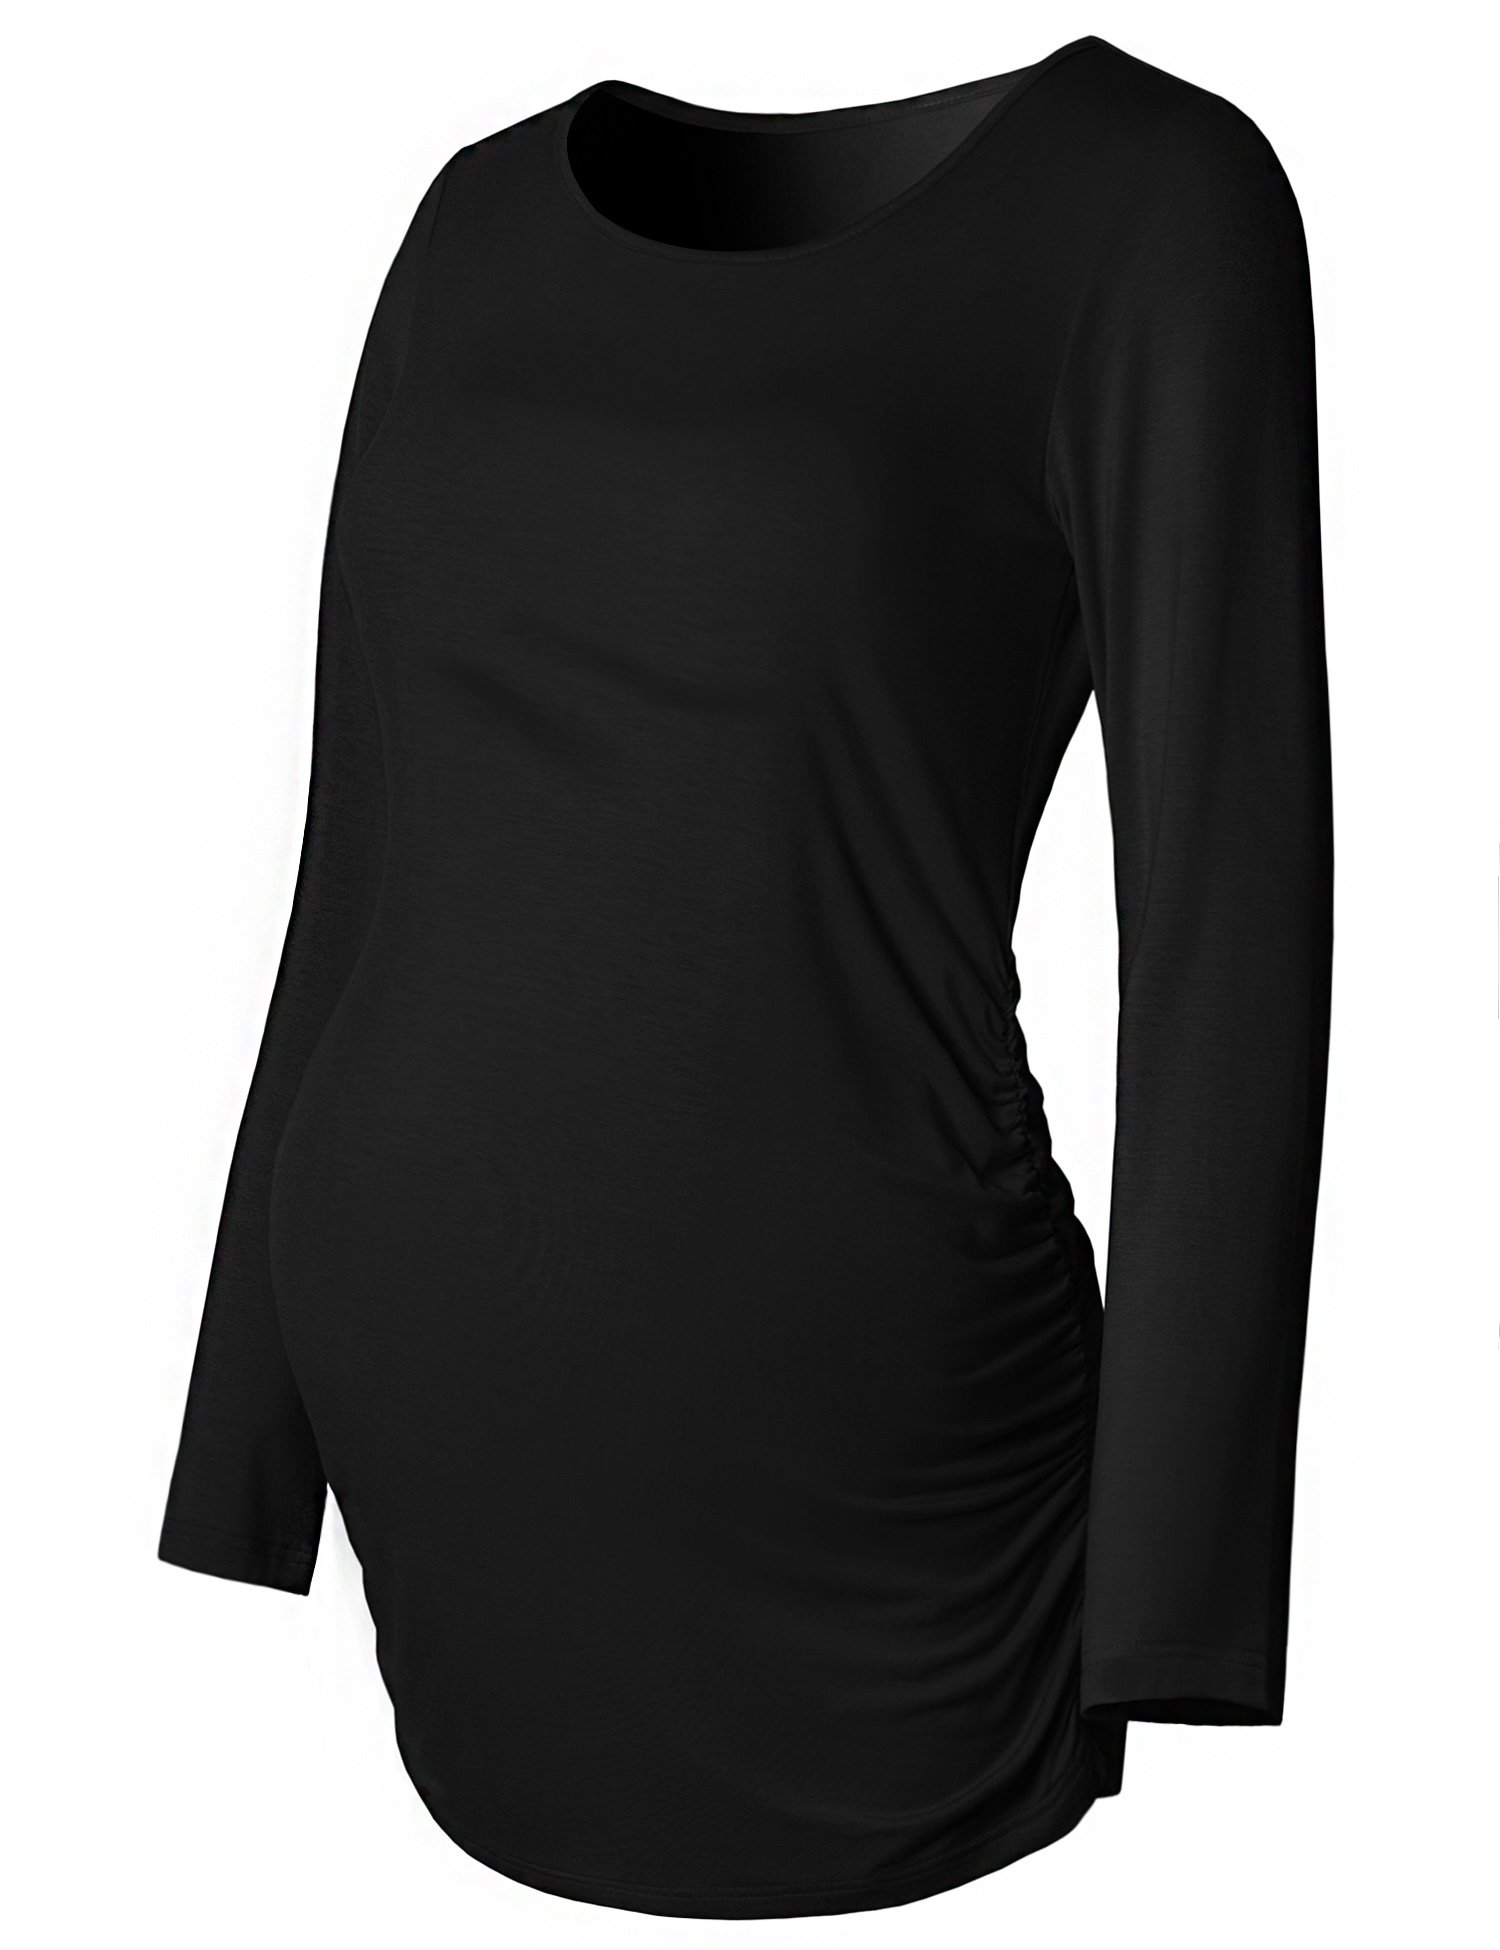 Maternity Shirt Long Sleeve Basic Top Ruch Sides Bodycon Tshirt for Pregnant Women Black L